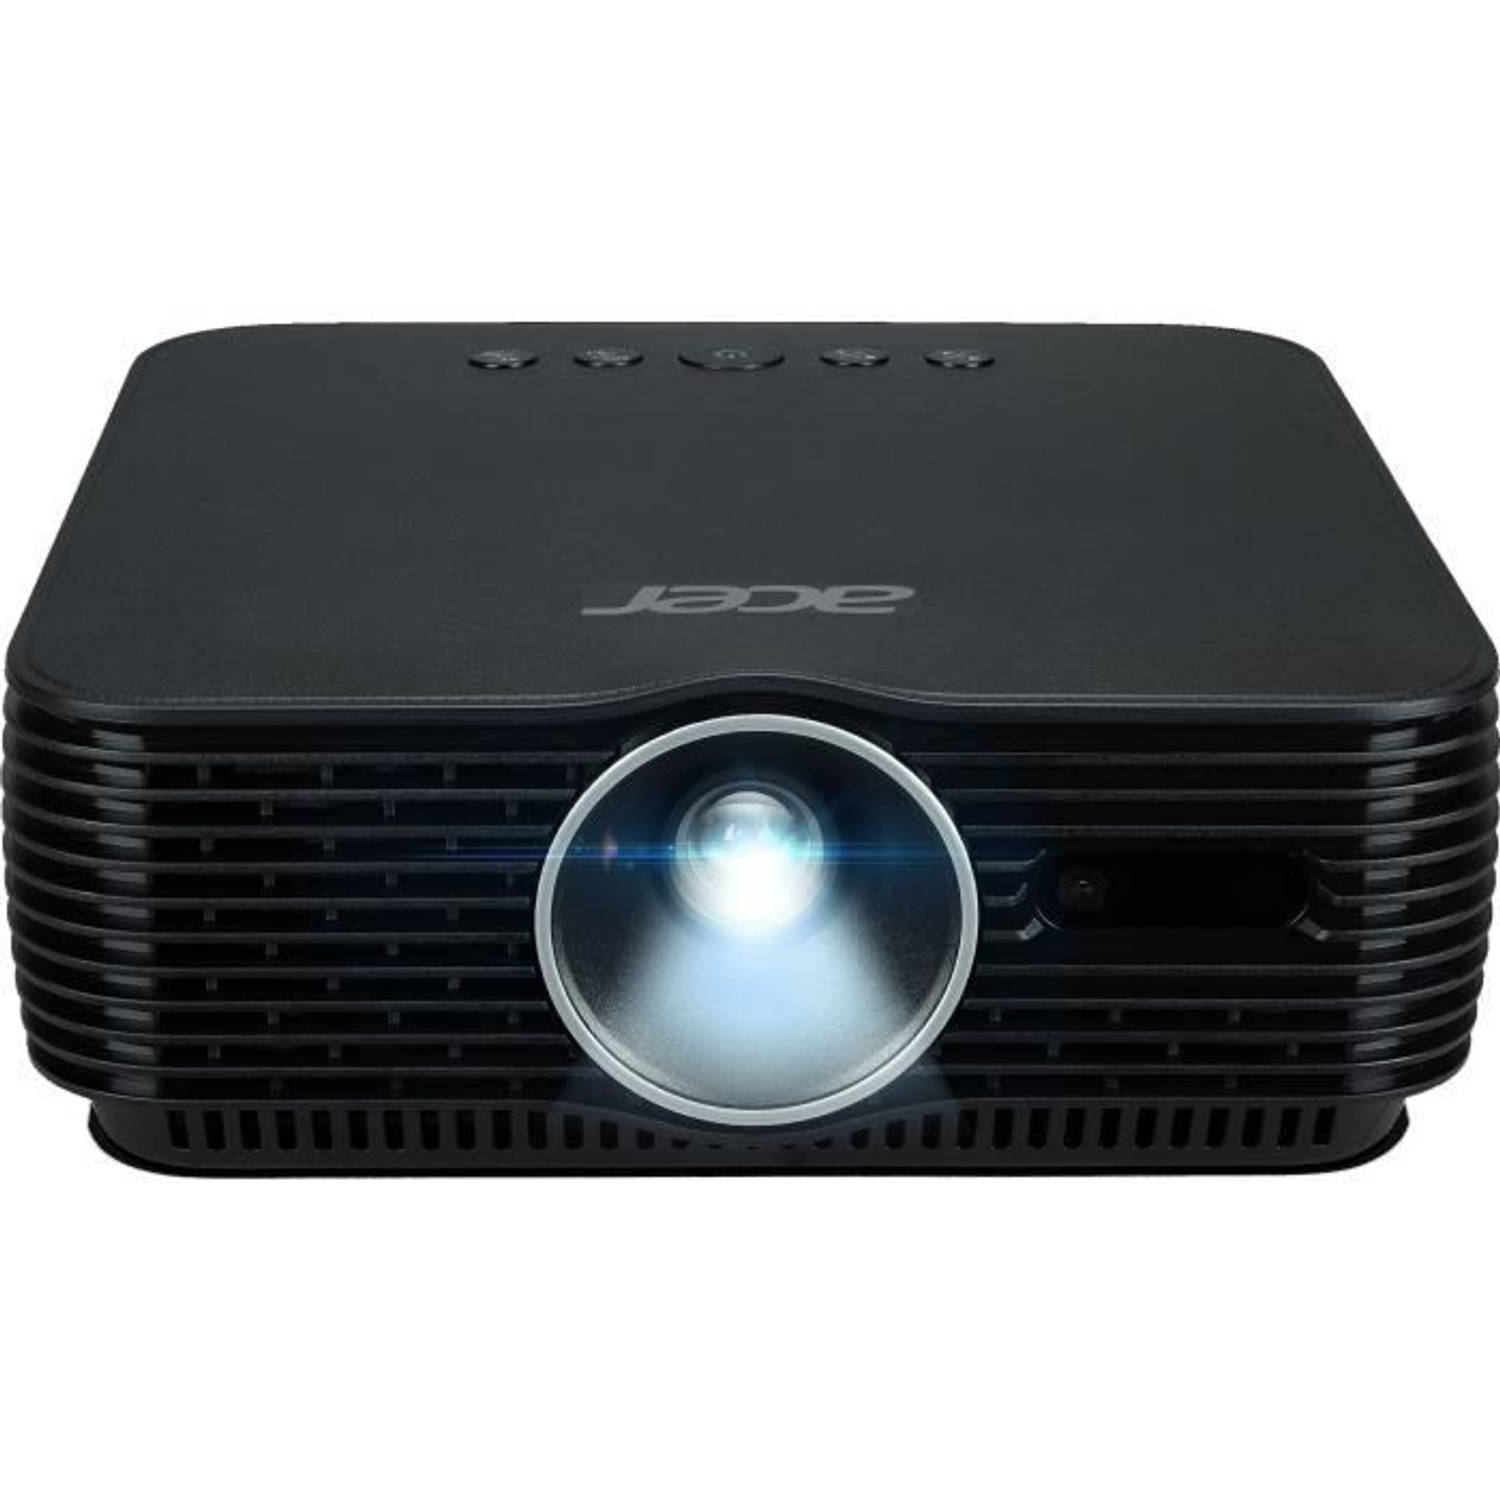 Acer B250i beamer-projector LED 1080p (1920x1080) Draagbare projector Zwart